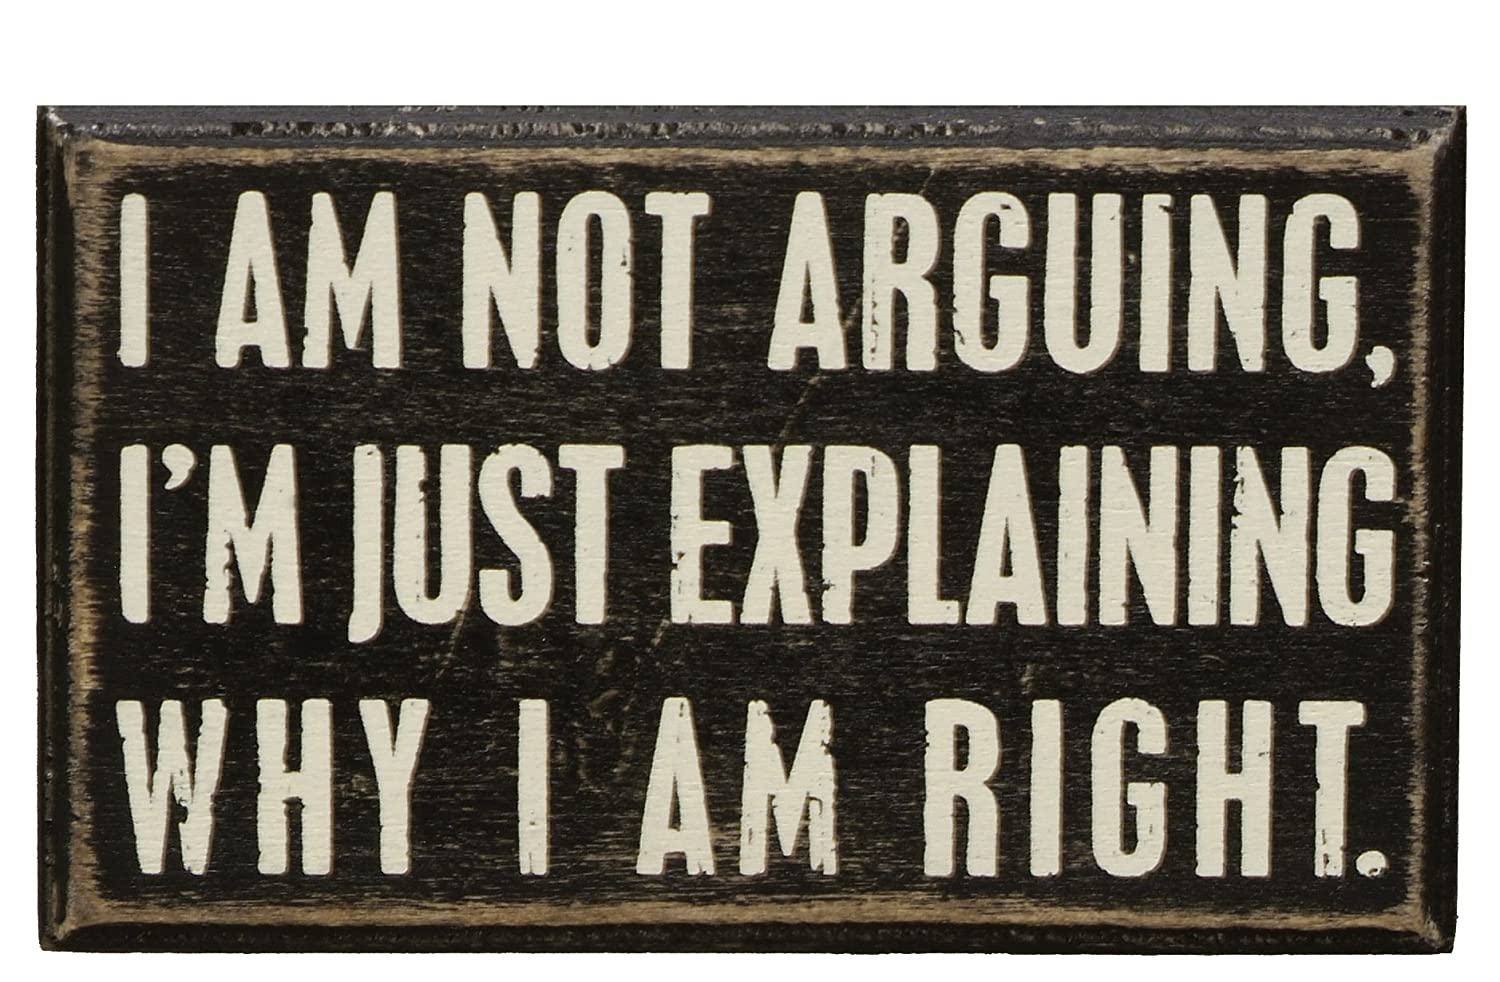 Primitives by Kathy Classic Box Sign, 5 x 3-Inches, Not Arguing